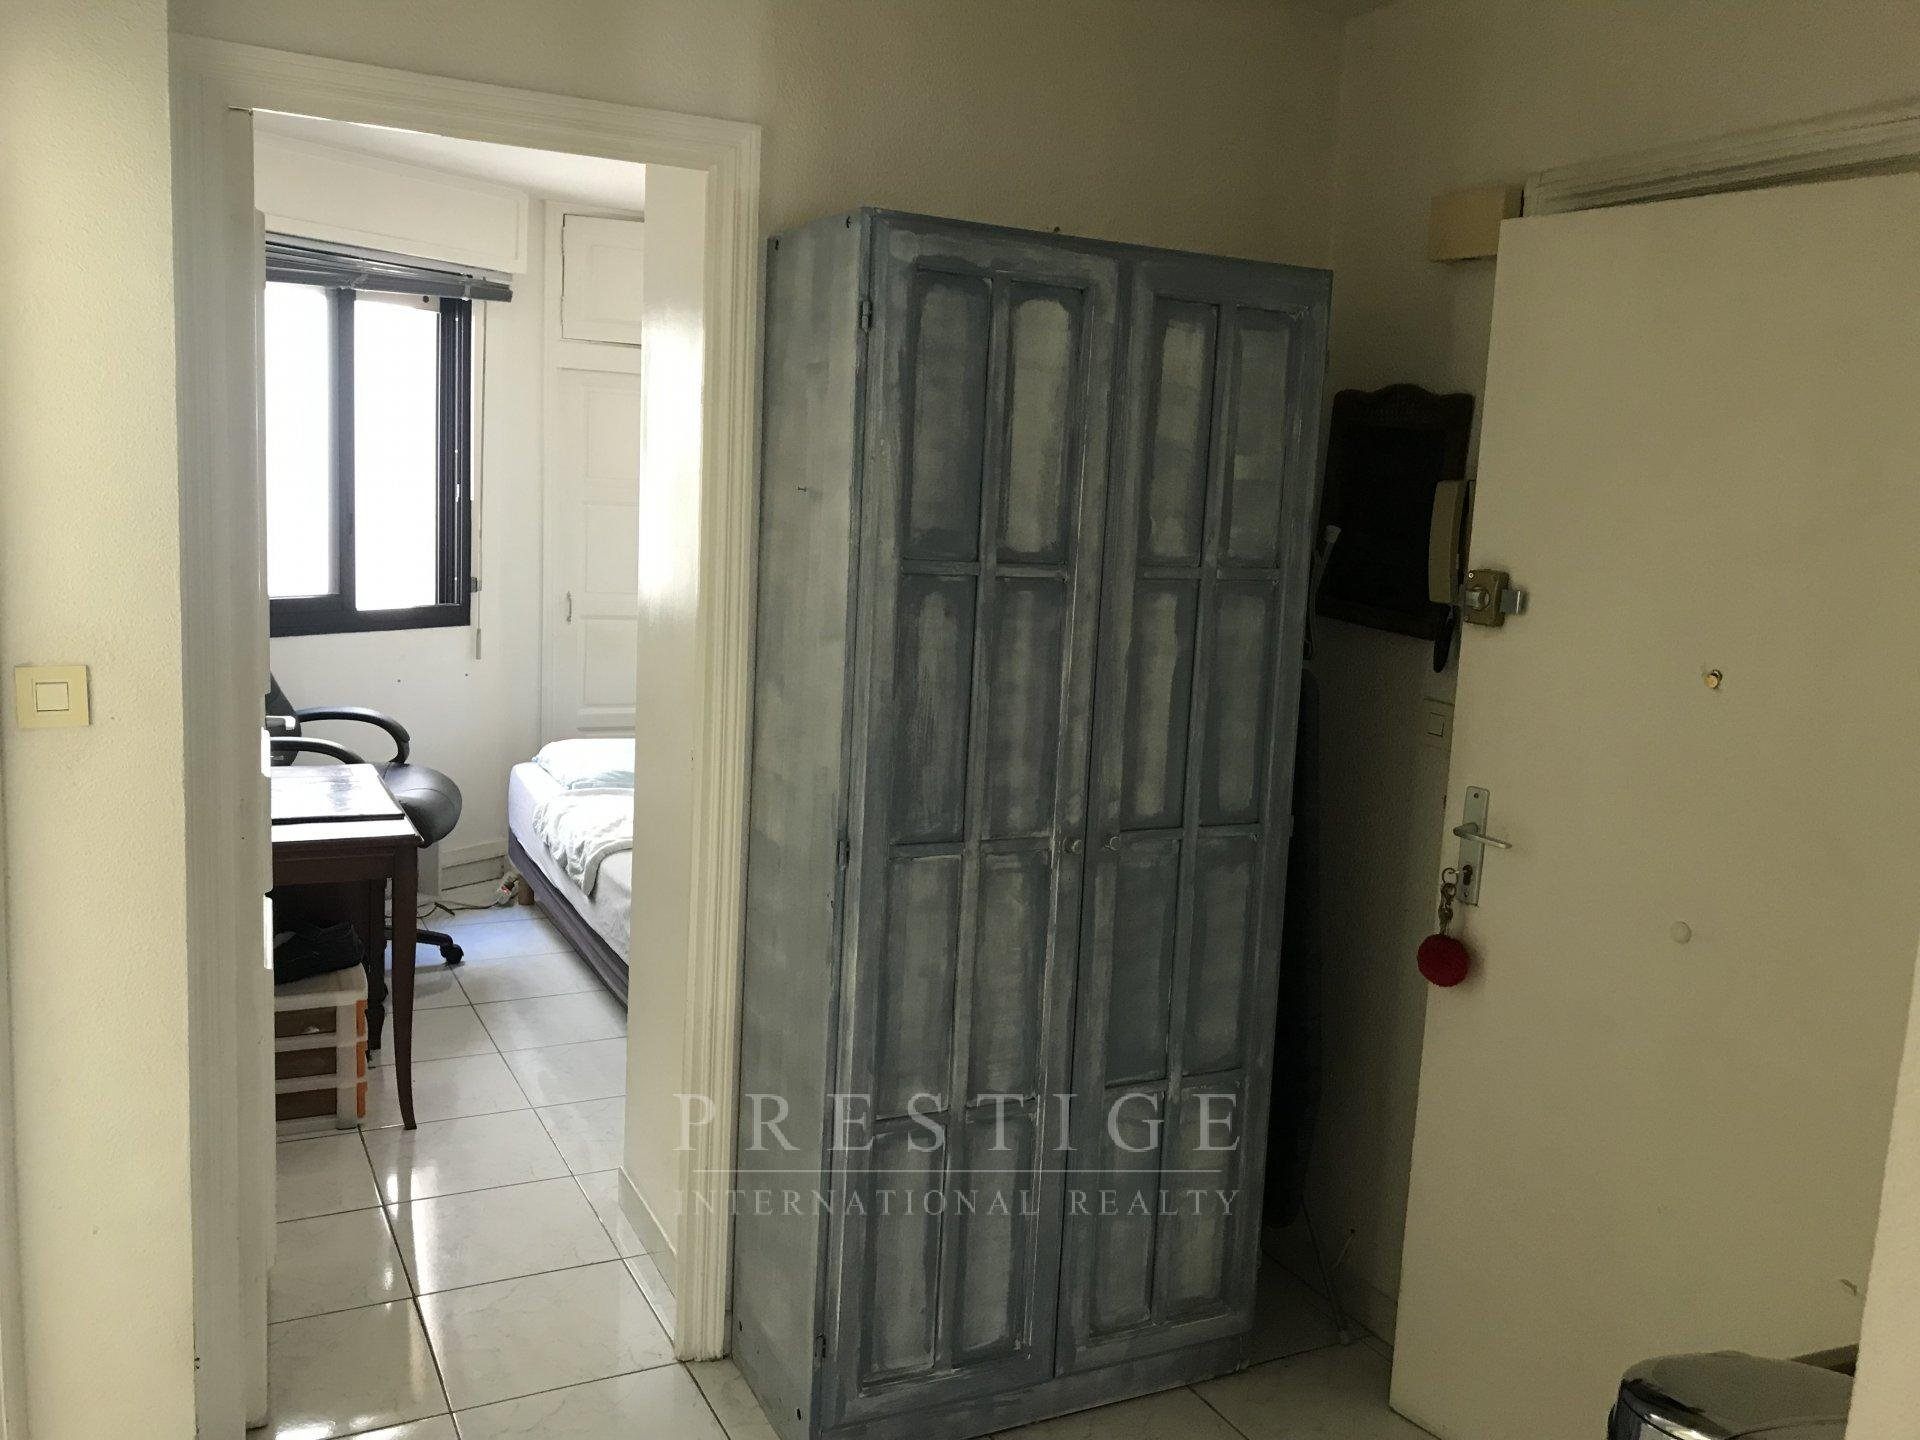 Antibes center flat with terrace,  OCCUPIED LIFE ANNUITY